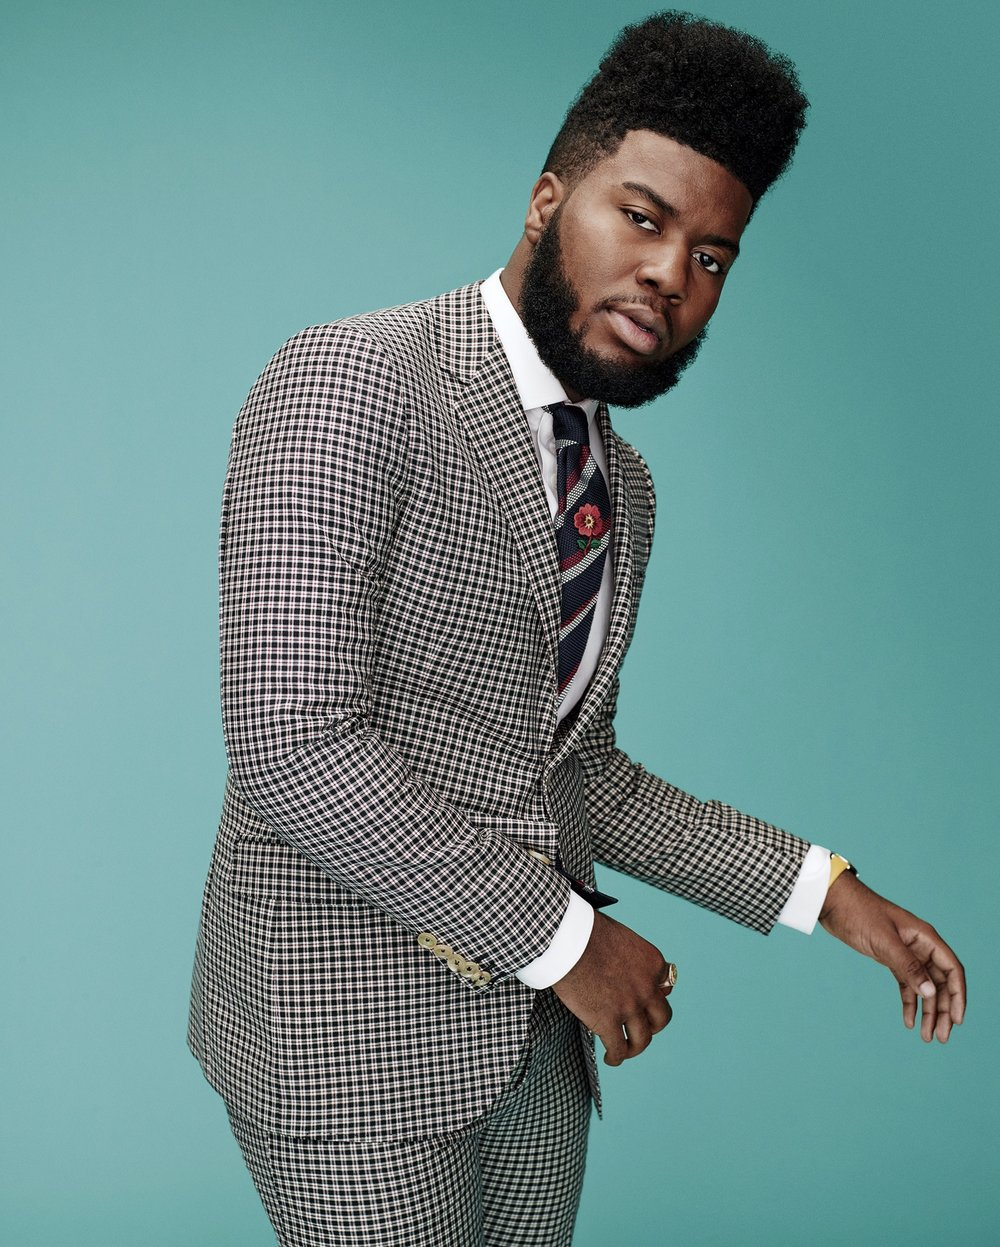 Khalid | September 2018 - At just 20 years old, he's got a platinum album called